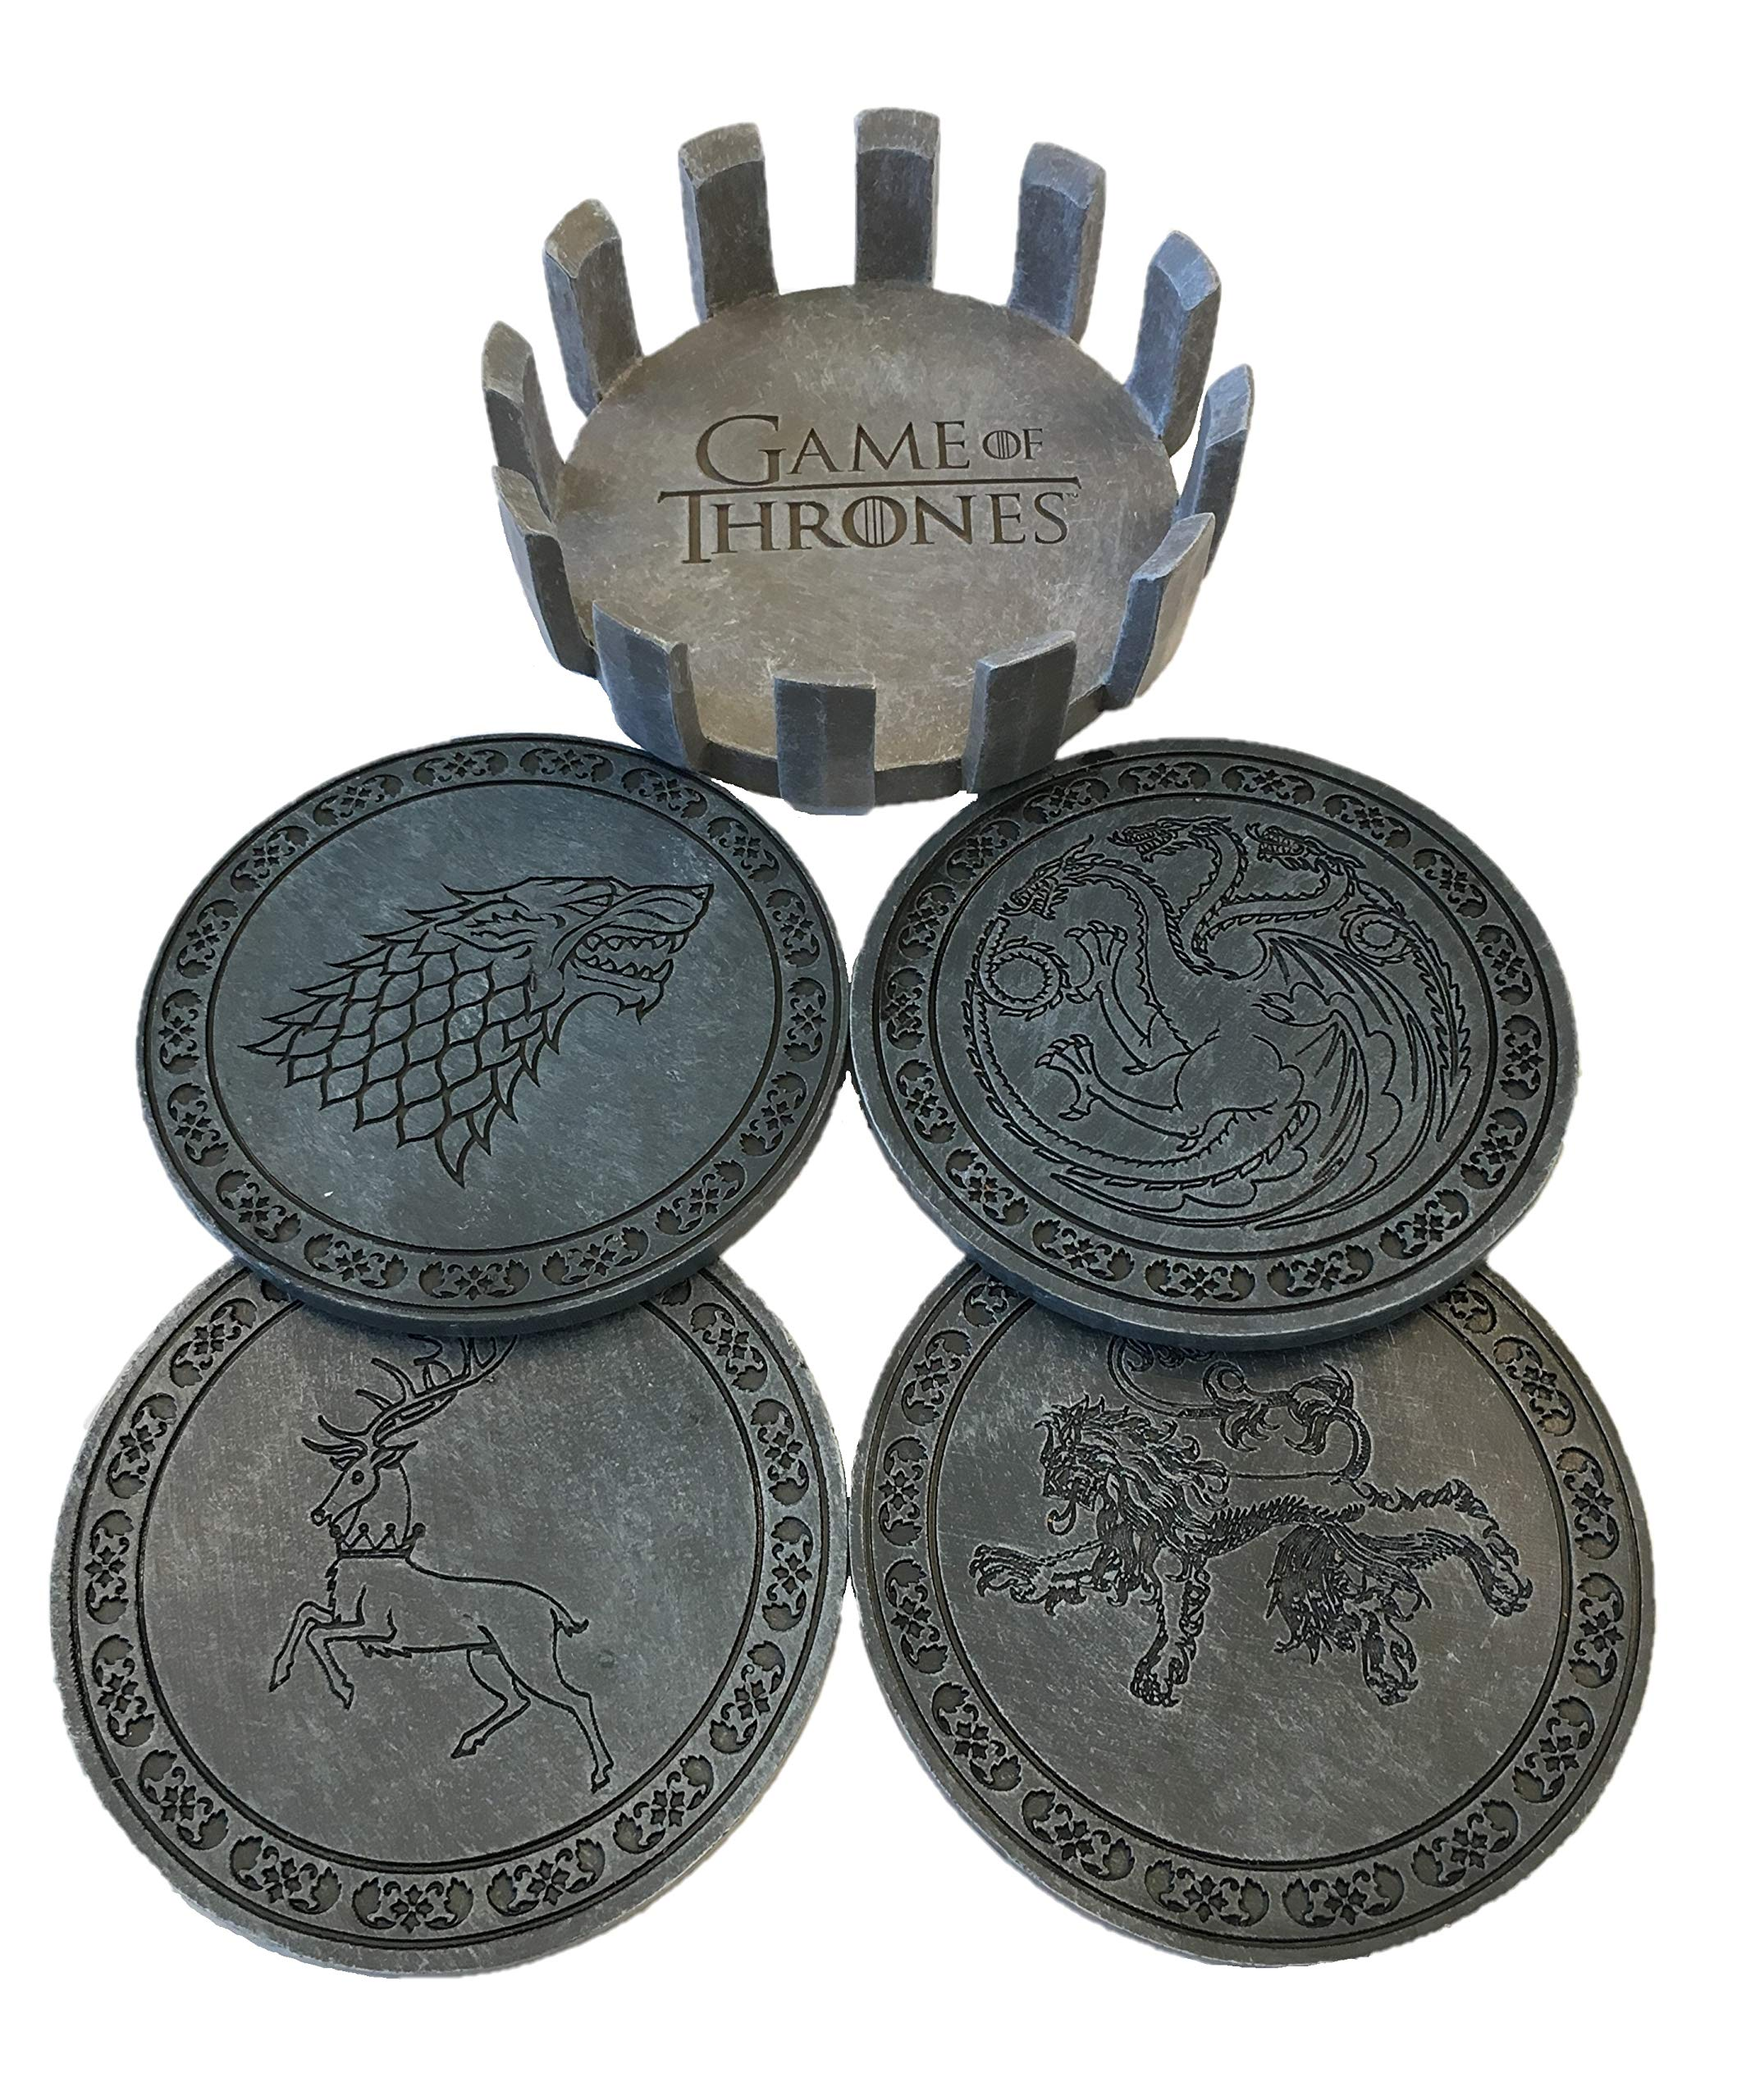 Game of Thrones Drink Coaster Set with Holder- House Sigil Beverage Coasters - Set of Four Faux Sandstone Coasters- Cork Backed